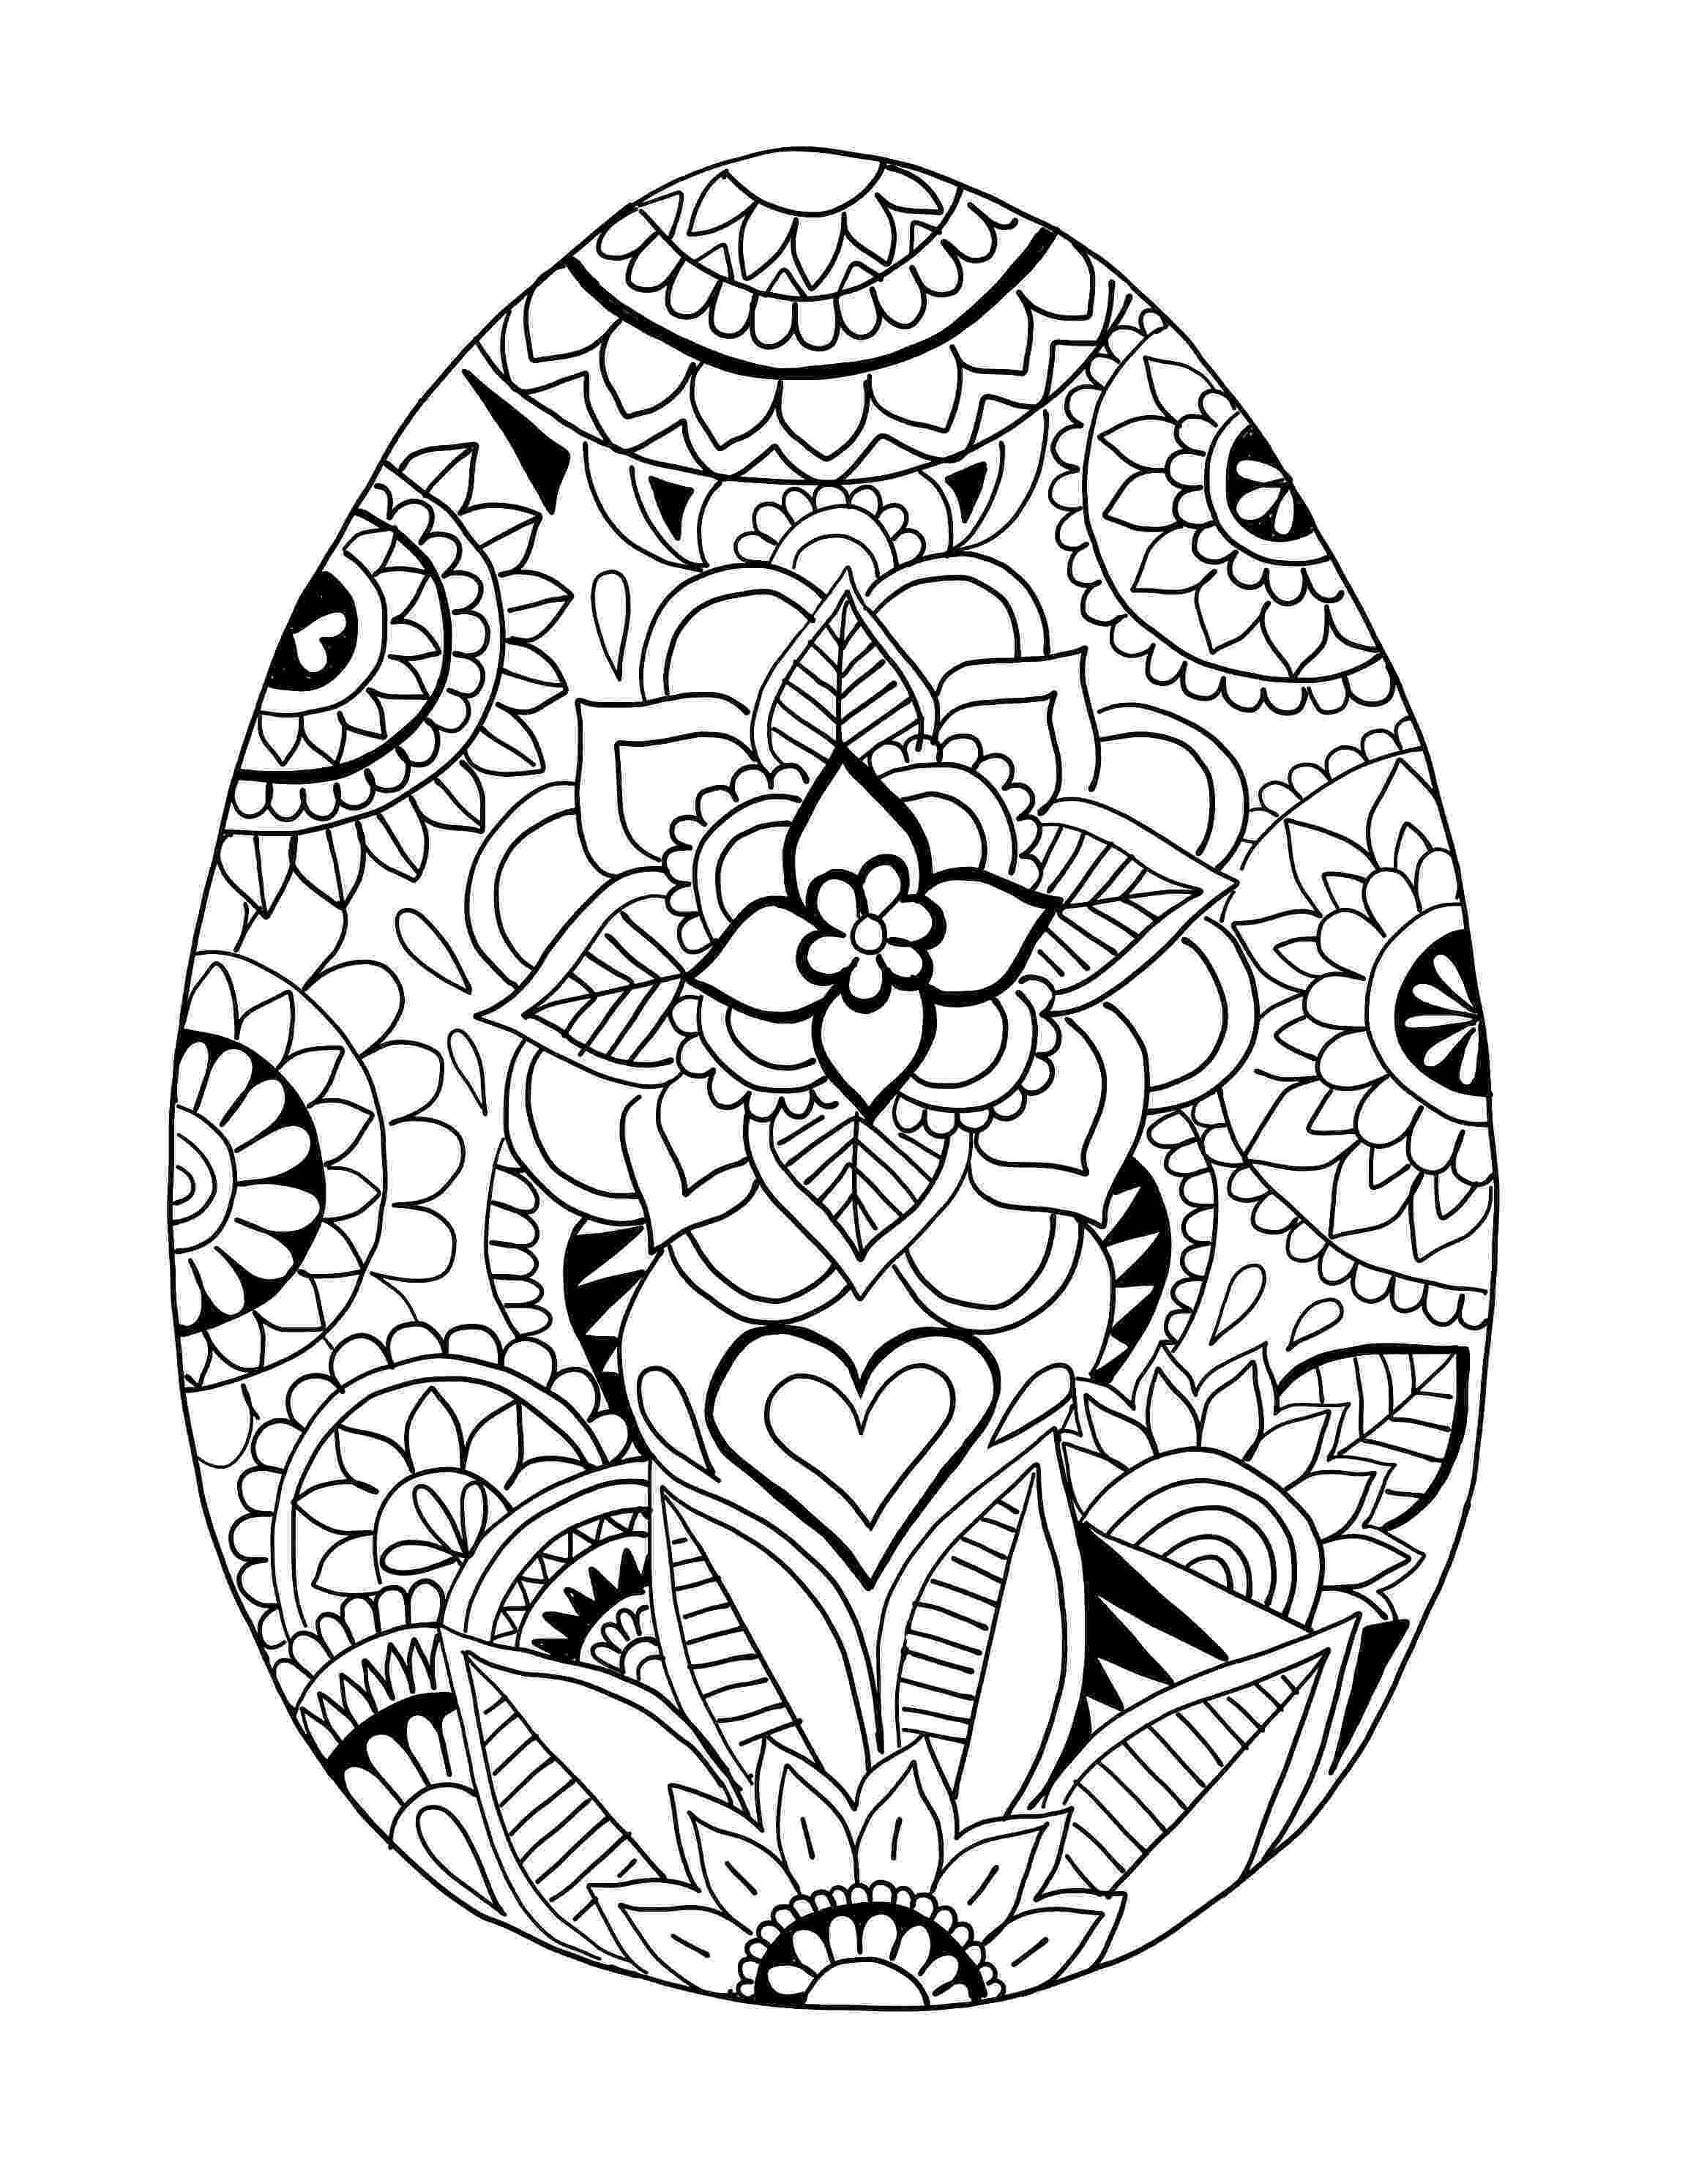 easter coloring sheets free printable free easter colouring pages the organised housewife sheets easter coloring printable free